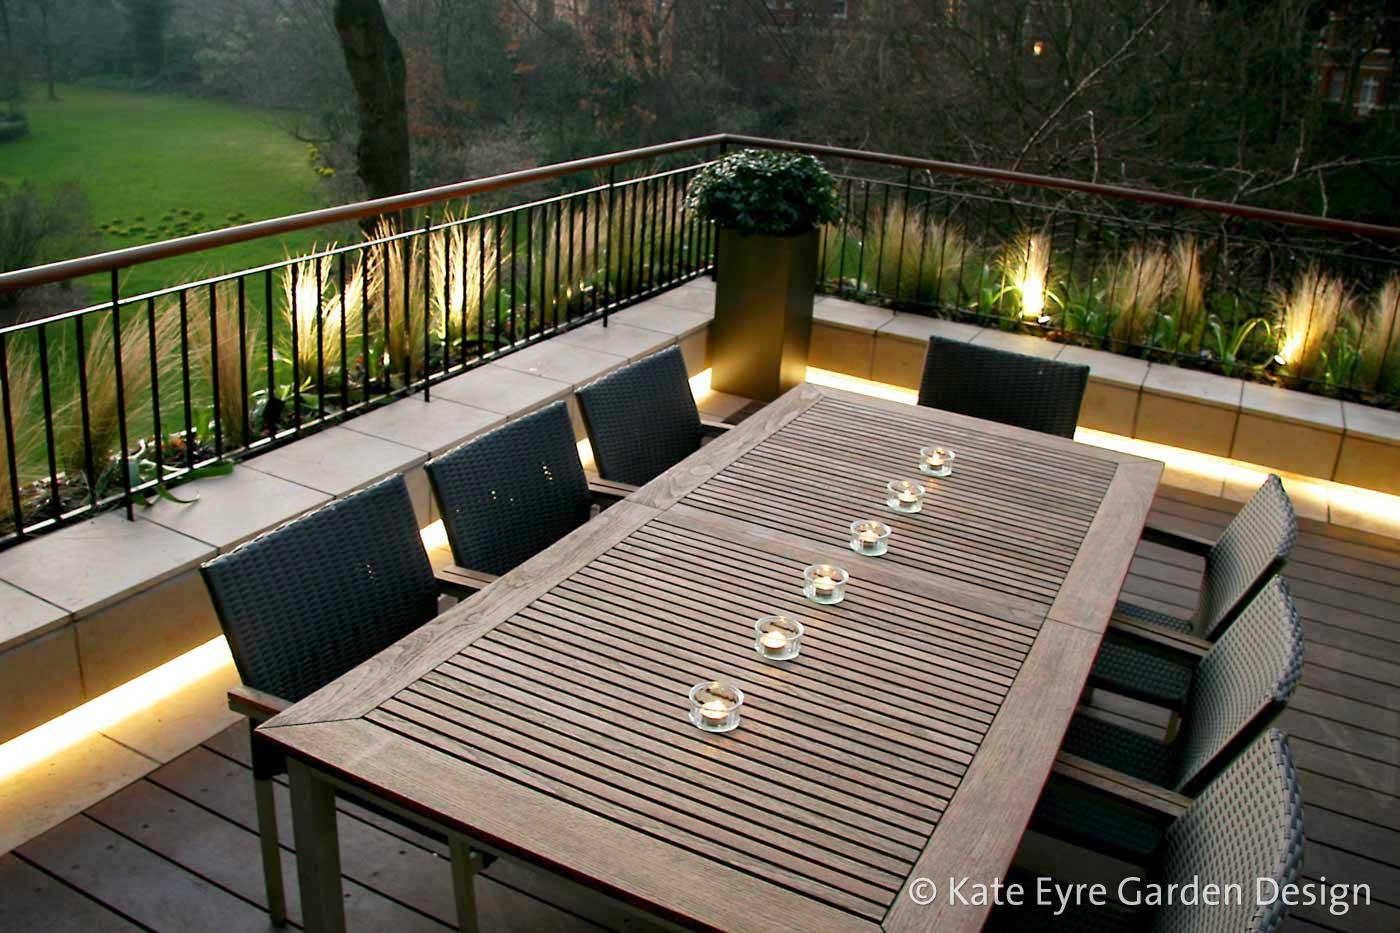 A roof garden design in Notting Hill, West London, 1